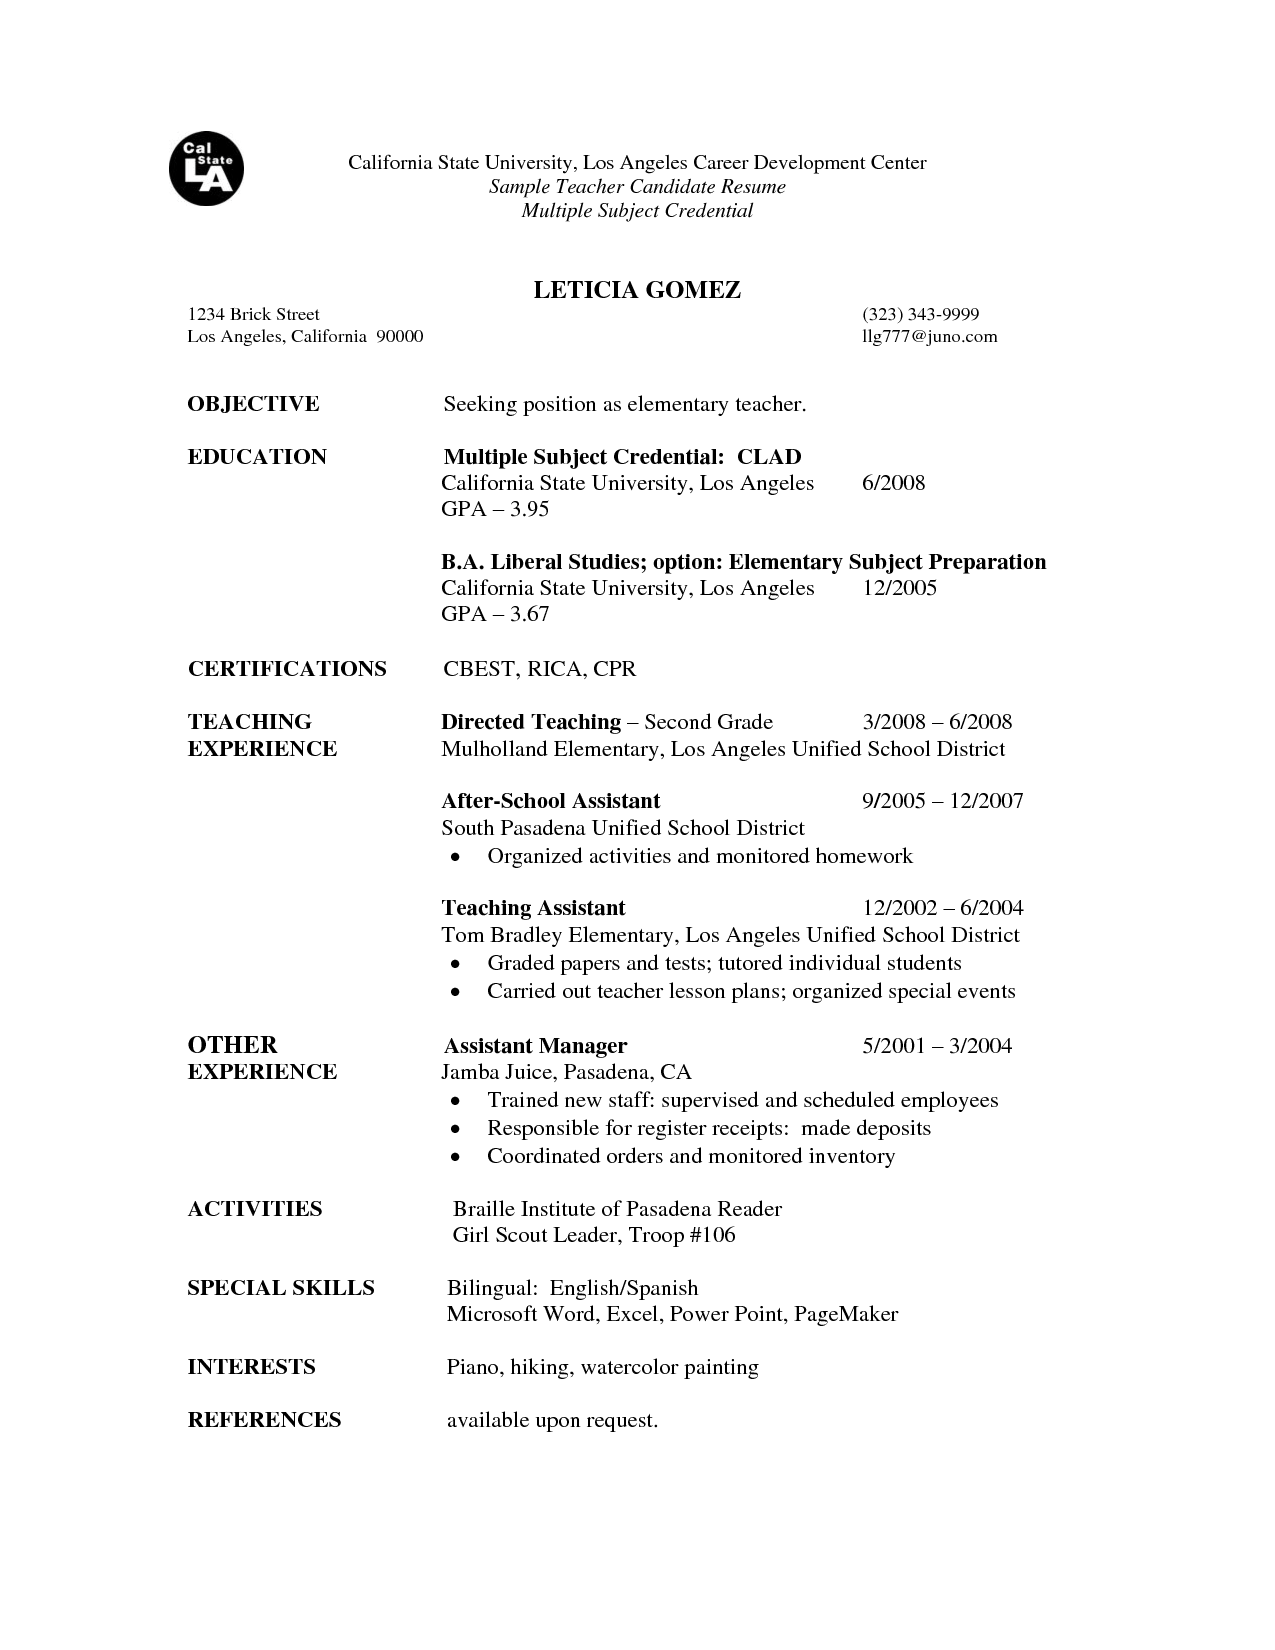 Resume Education Example Amusing Image Result For First Resume For Teacher  Resume  Pinterest Design Decoration